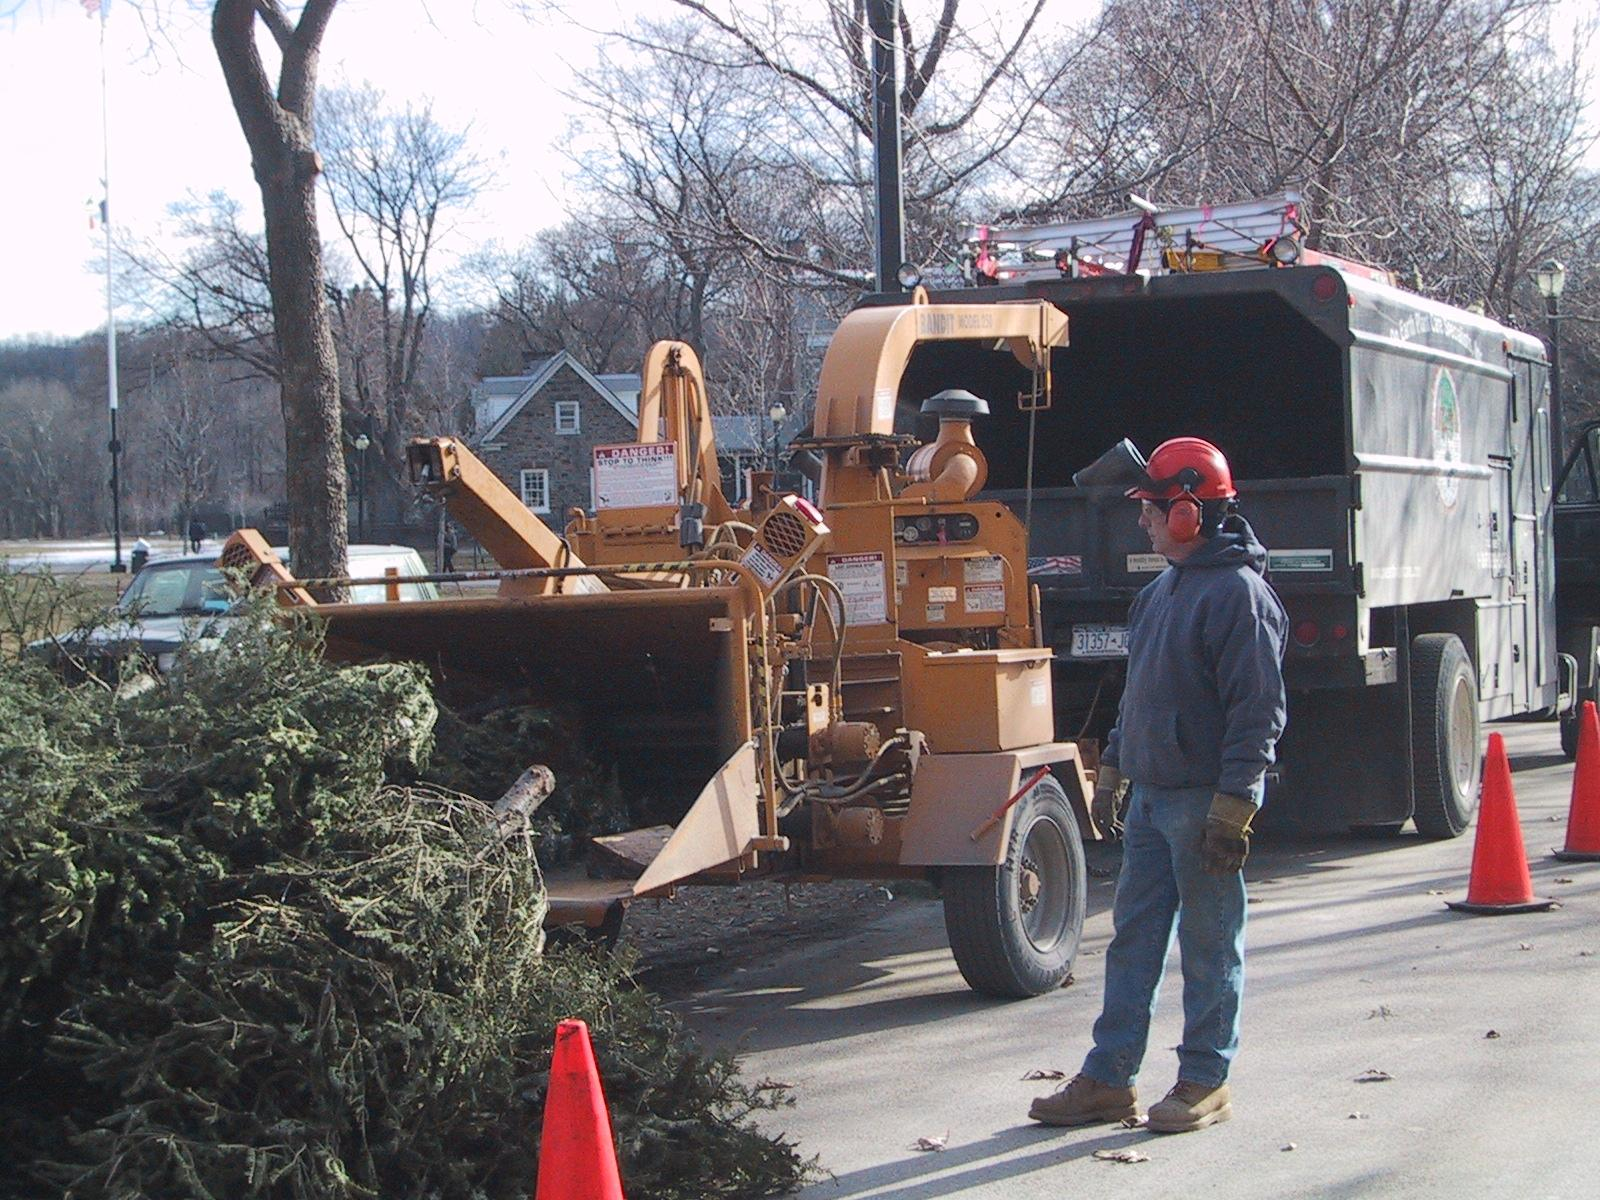 Christmas trees are being chipped up after the holidays as a community service.